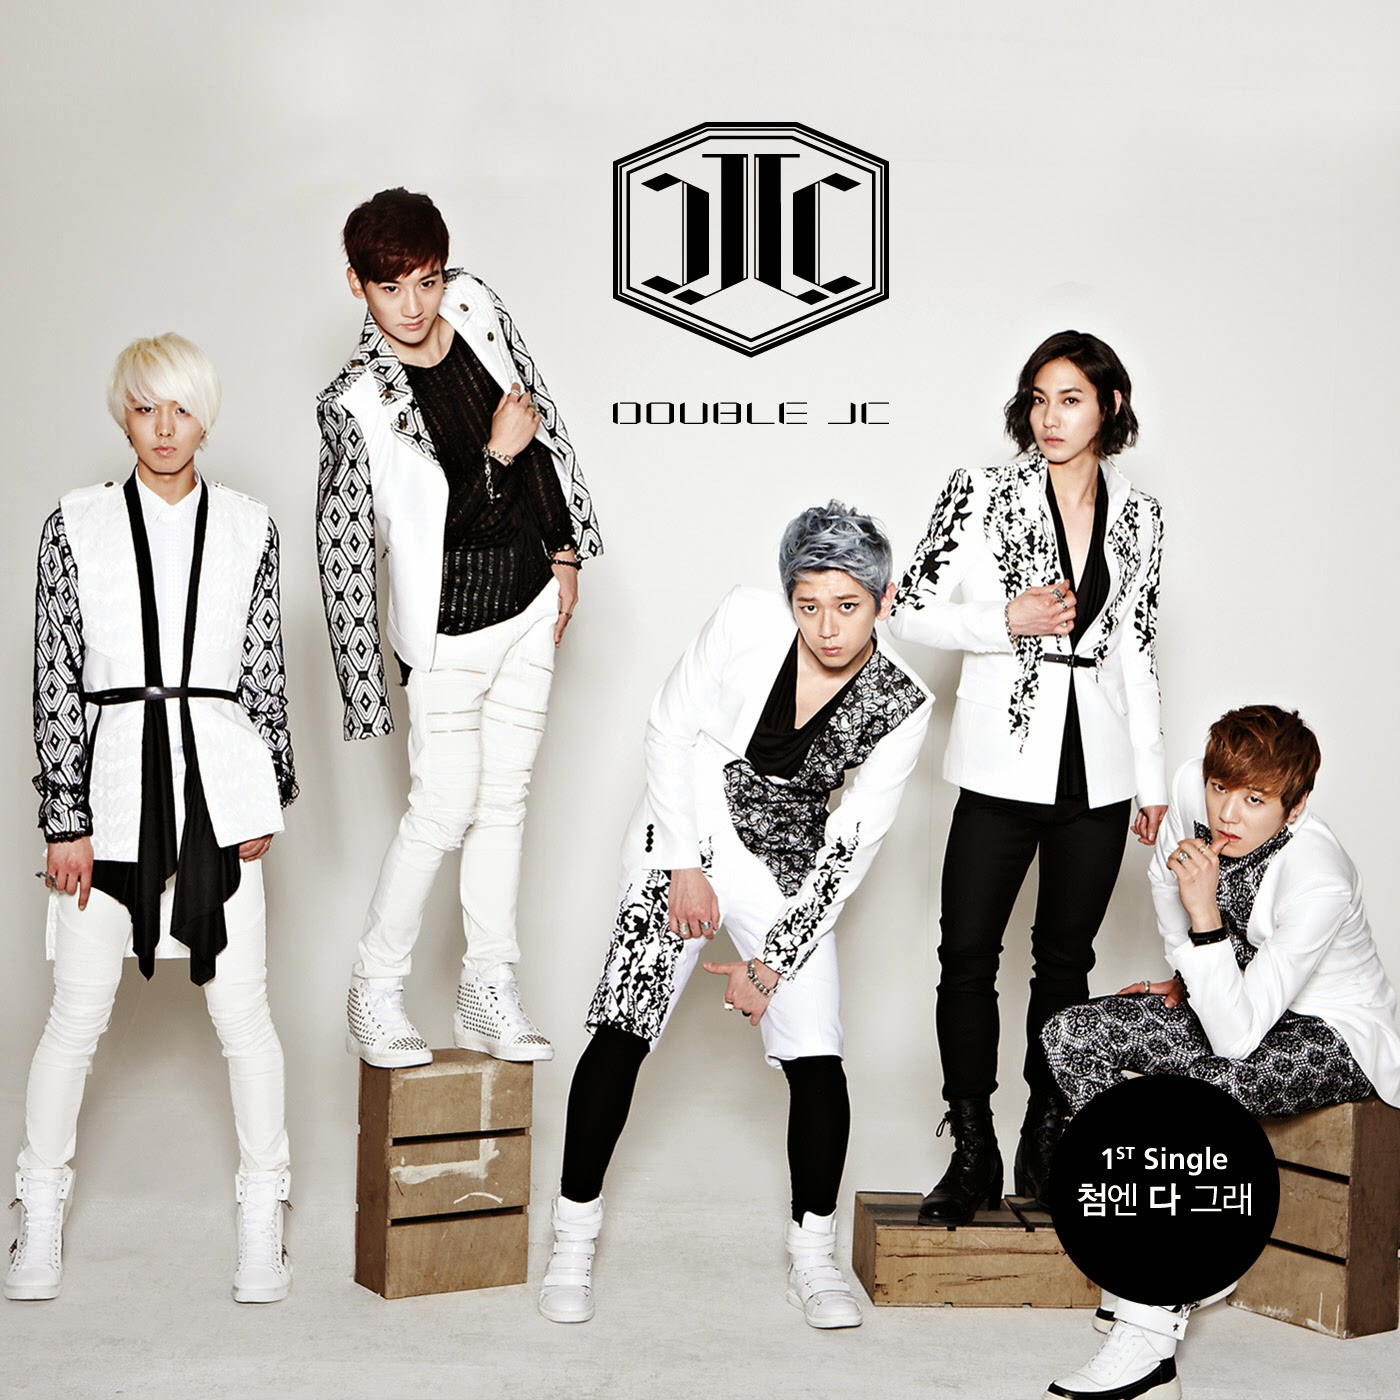 SimBa, EDDY, Prince Mak, E.co, and San-Cheong pose on their first mini album's cover./via Google